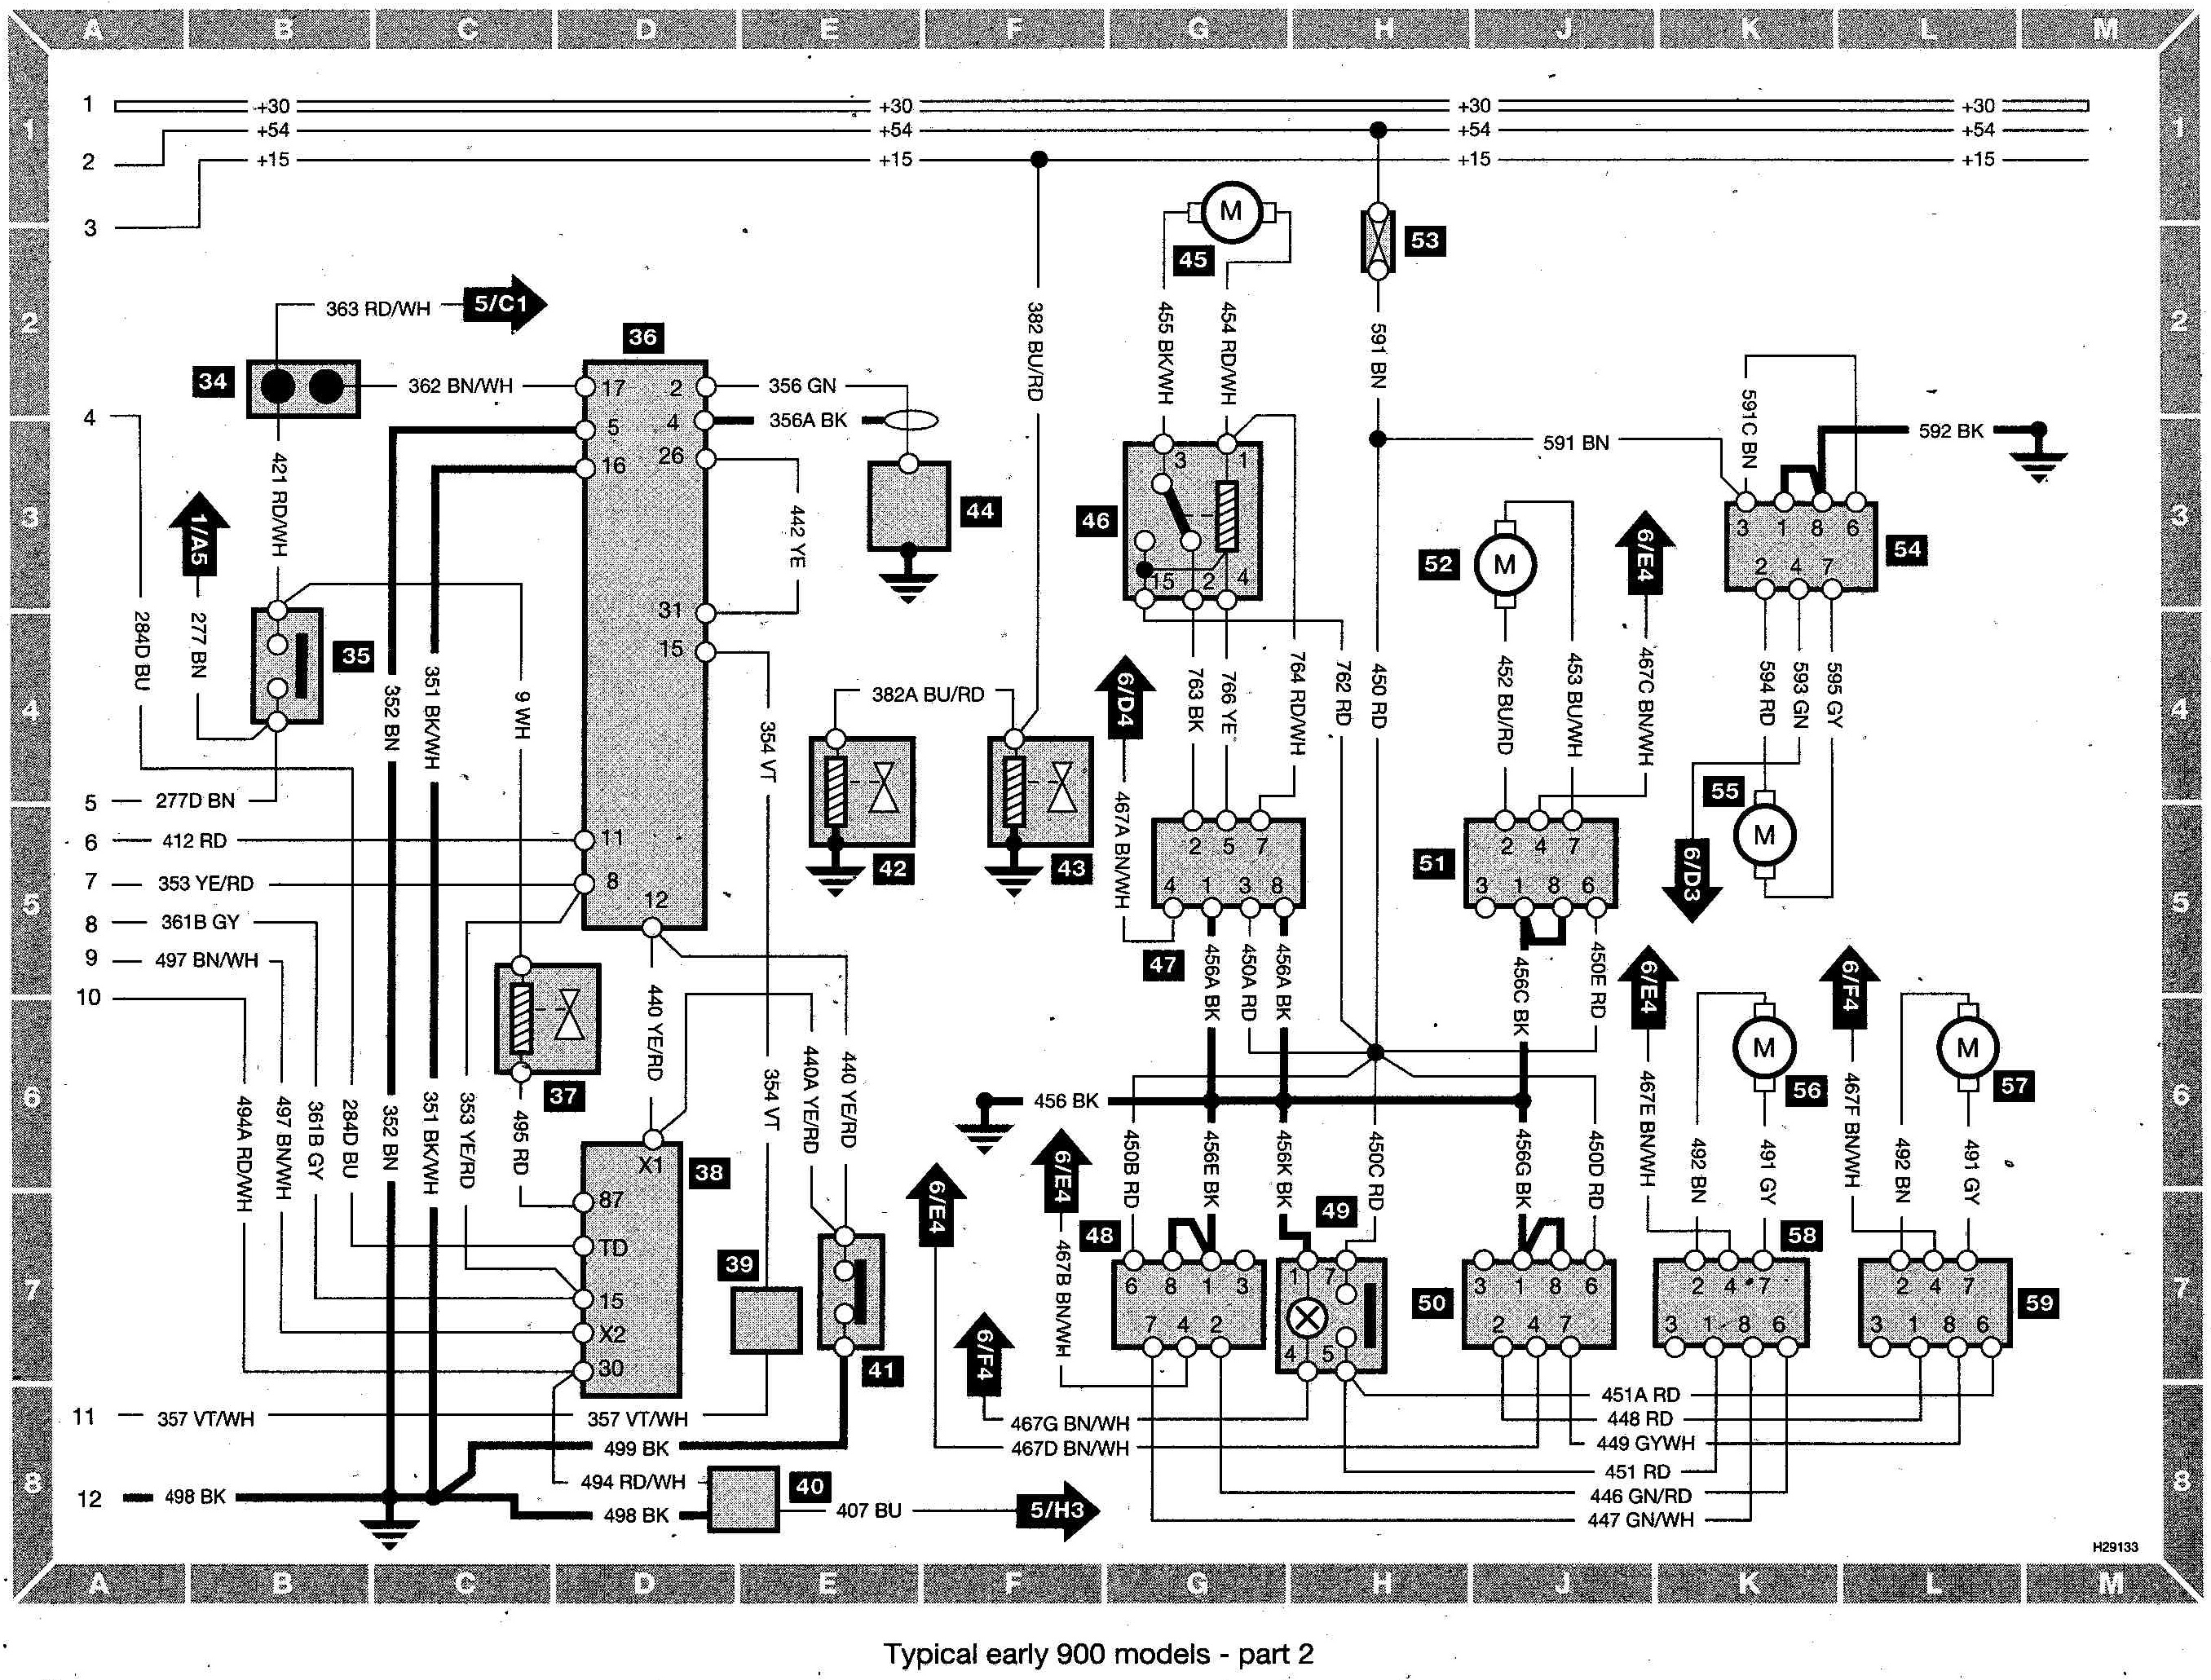 Saab 900 Wiring diagram (early models) part 2?resized665%2C505 saab wiring diagrams efcaviation com saab 9-3 wiring diagram pdf at eliteediting.co